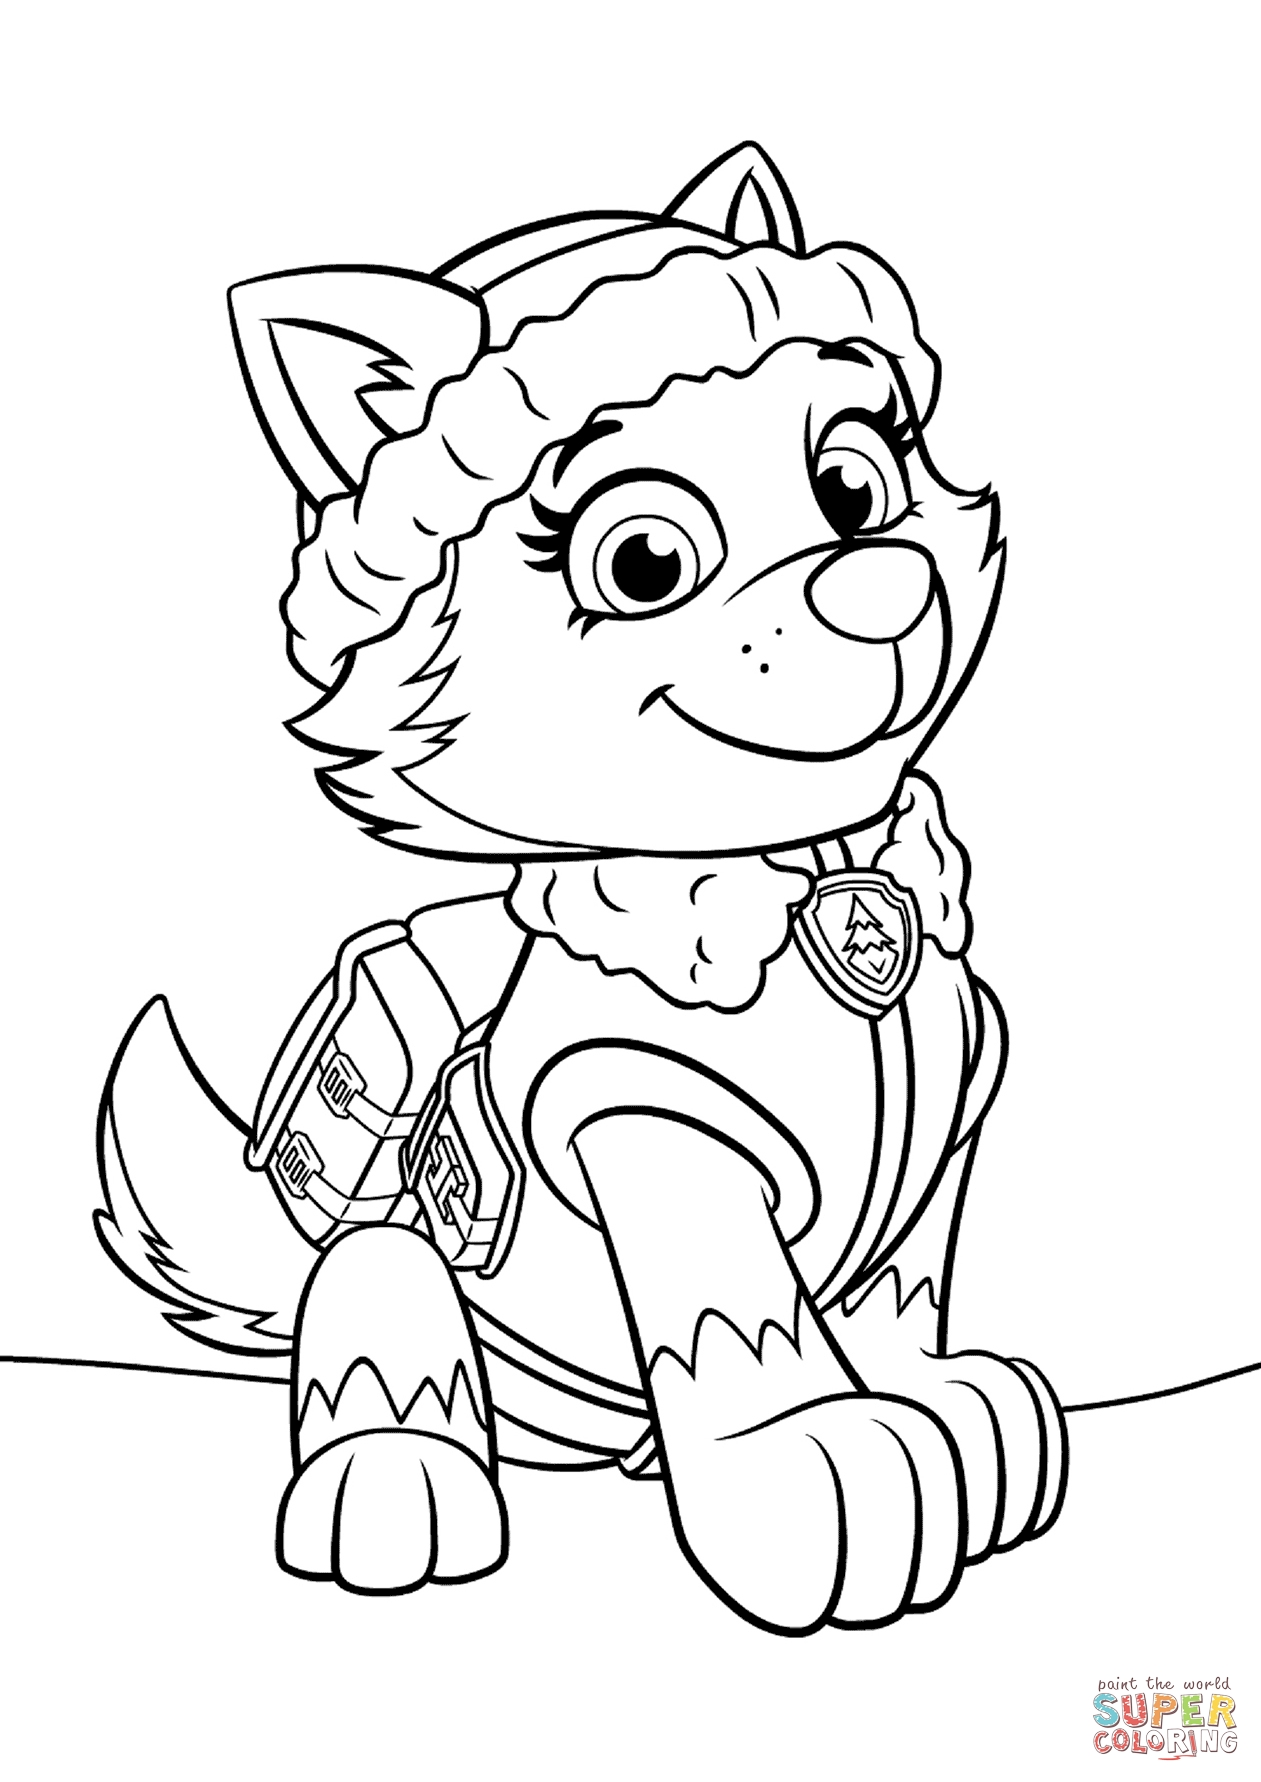 free printable paw patrol coloring pages - paw patrol everest